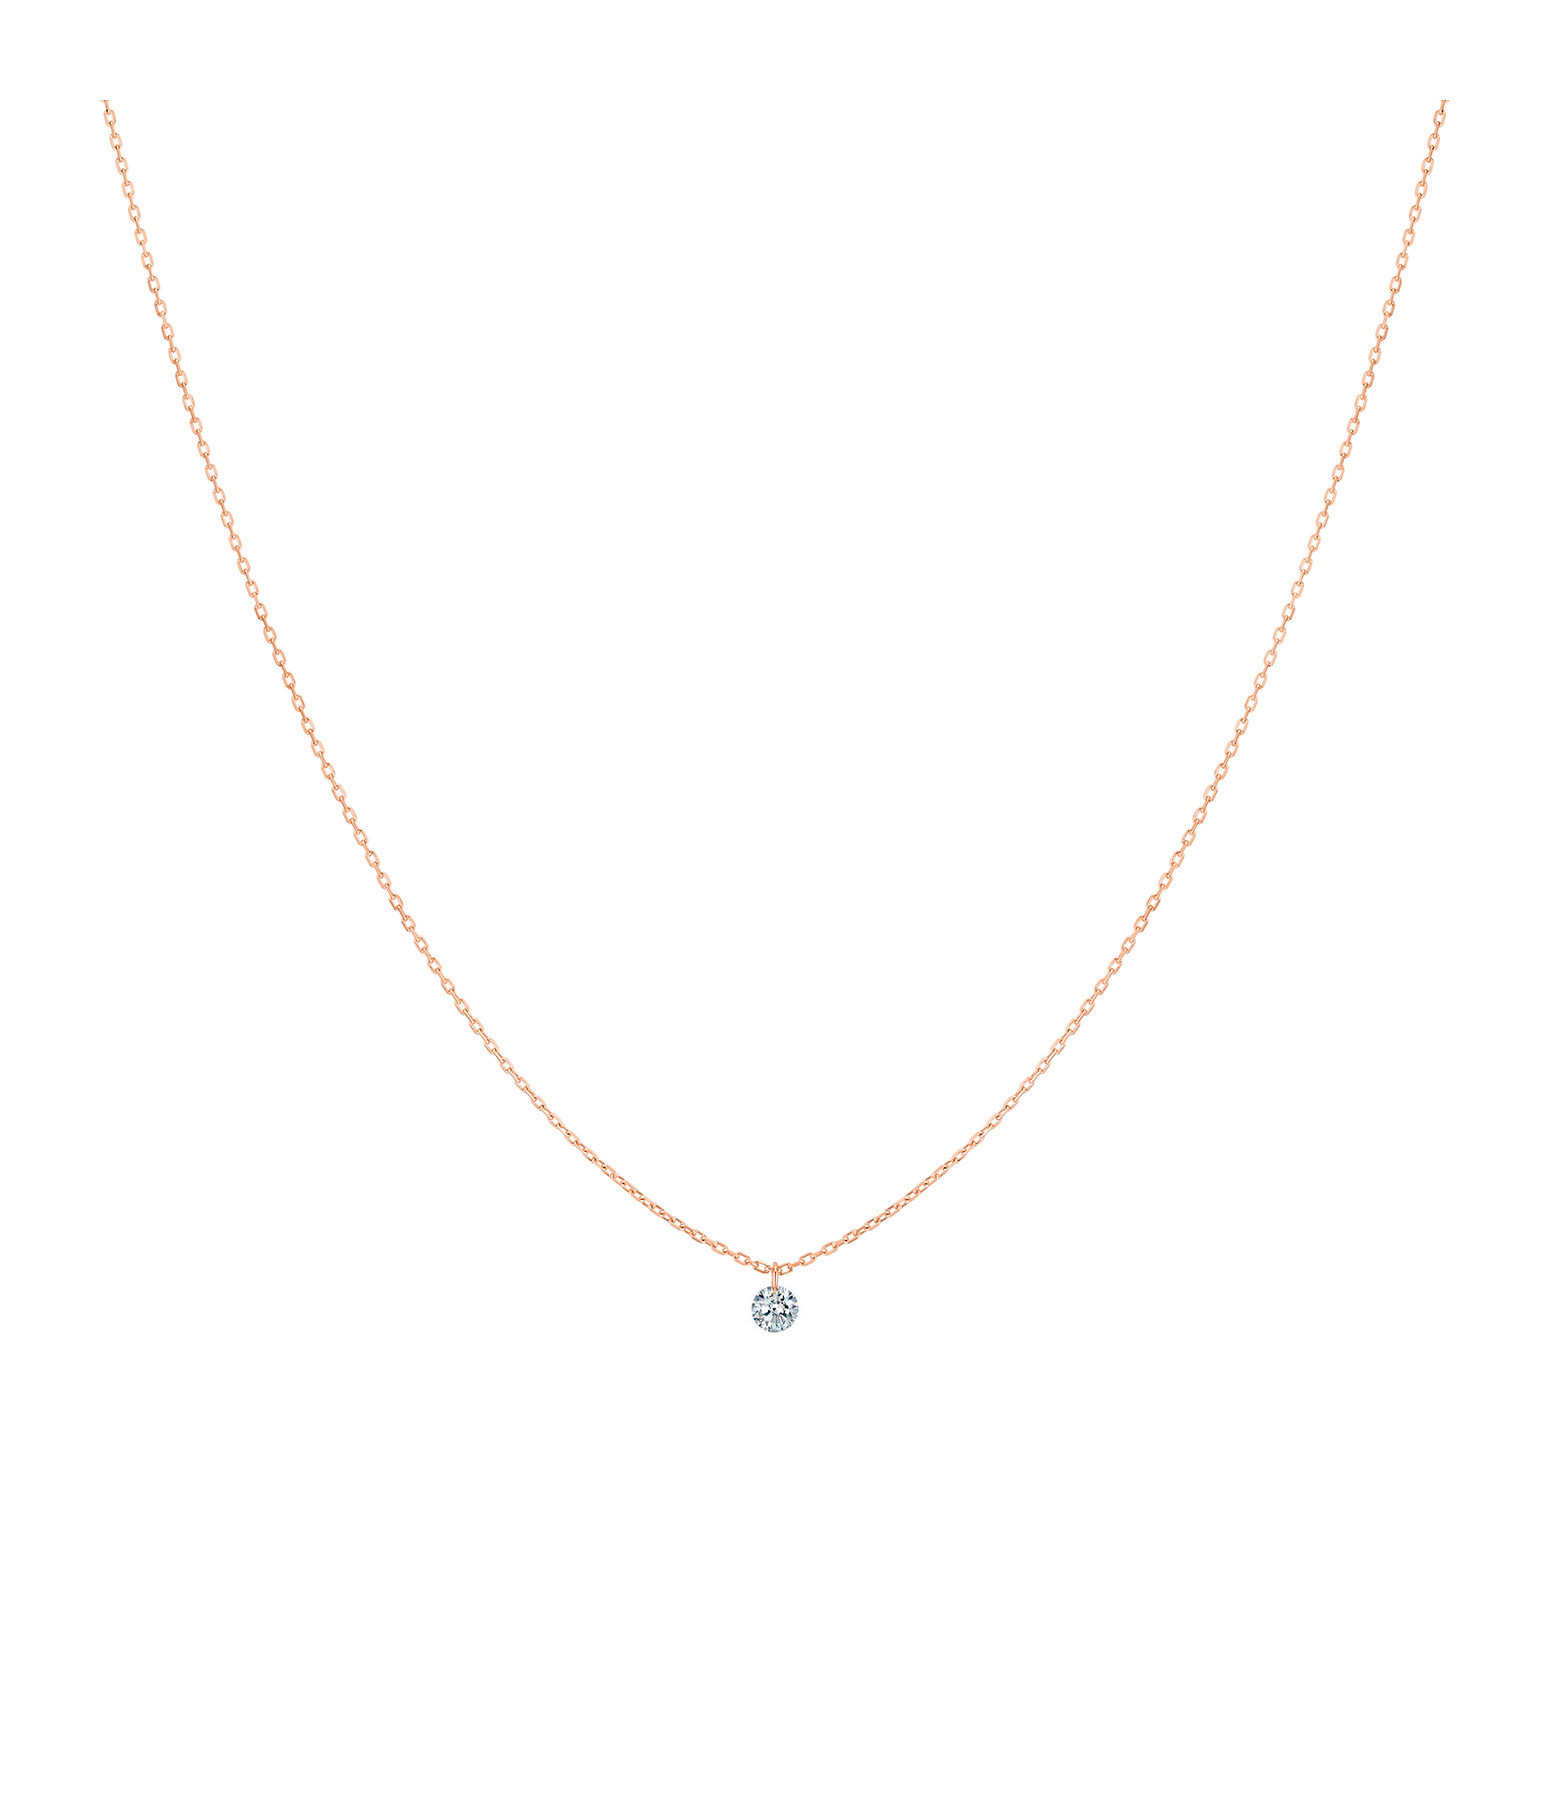 LA BRUNE & LA BLONDE - Collier 360° Diamant Brillant 0,07 Or Rose